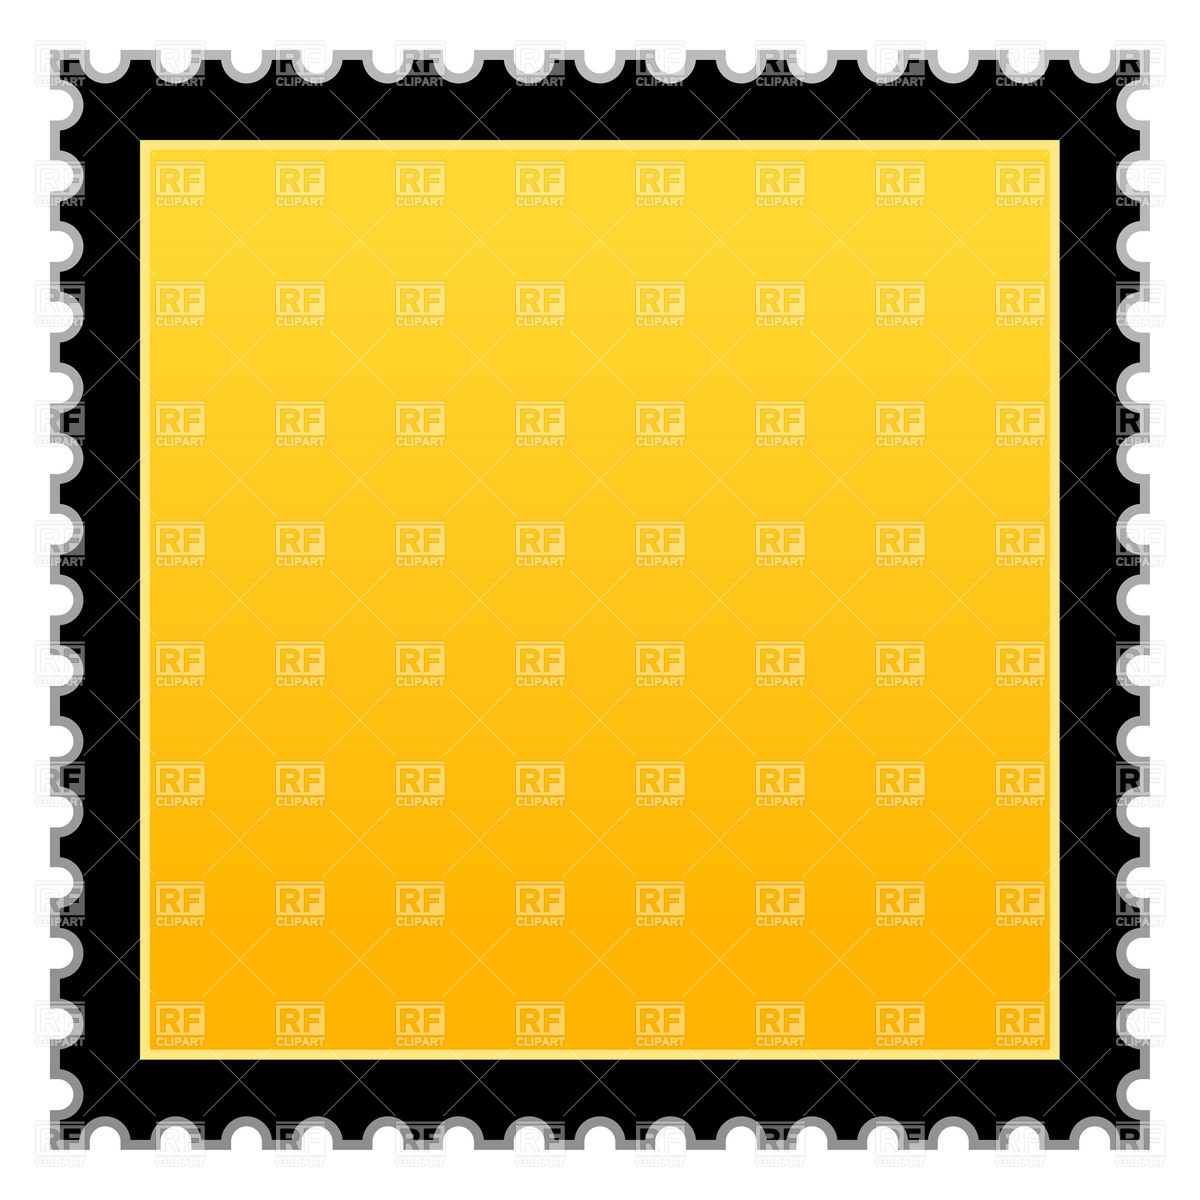 1200x1200 Yellow Postage Stamp With Black Border Vector Image Vector